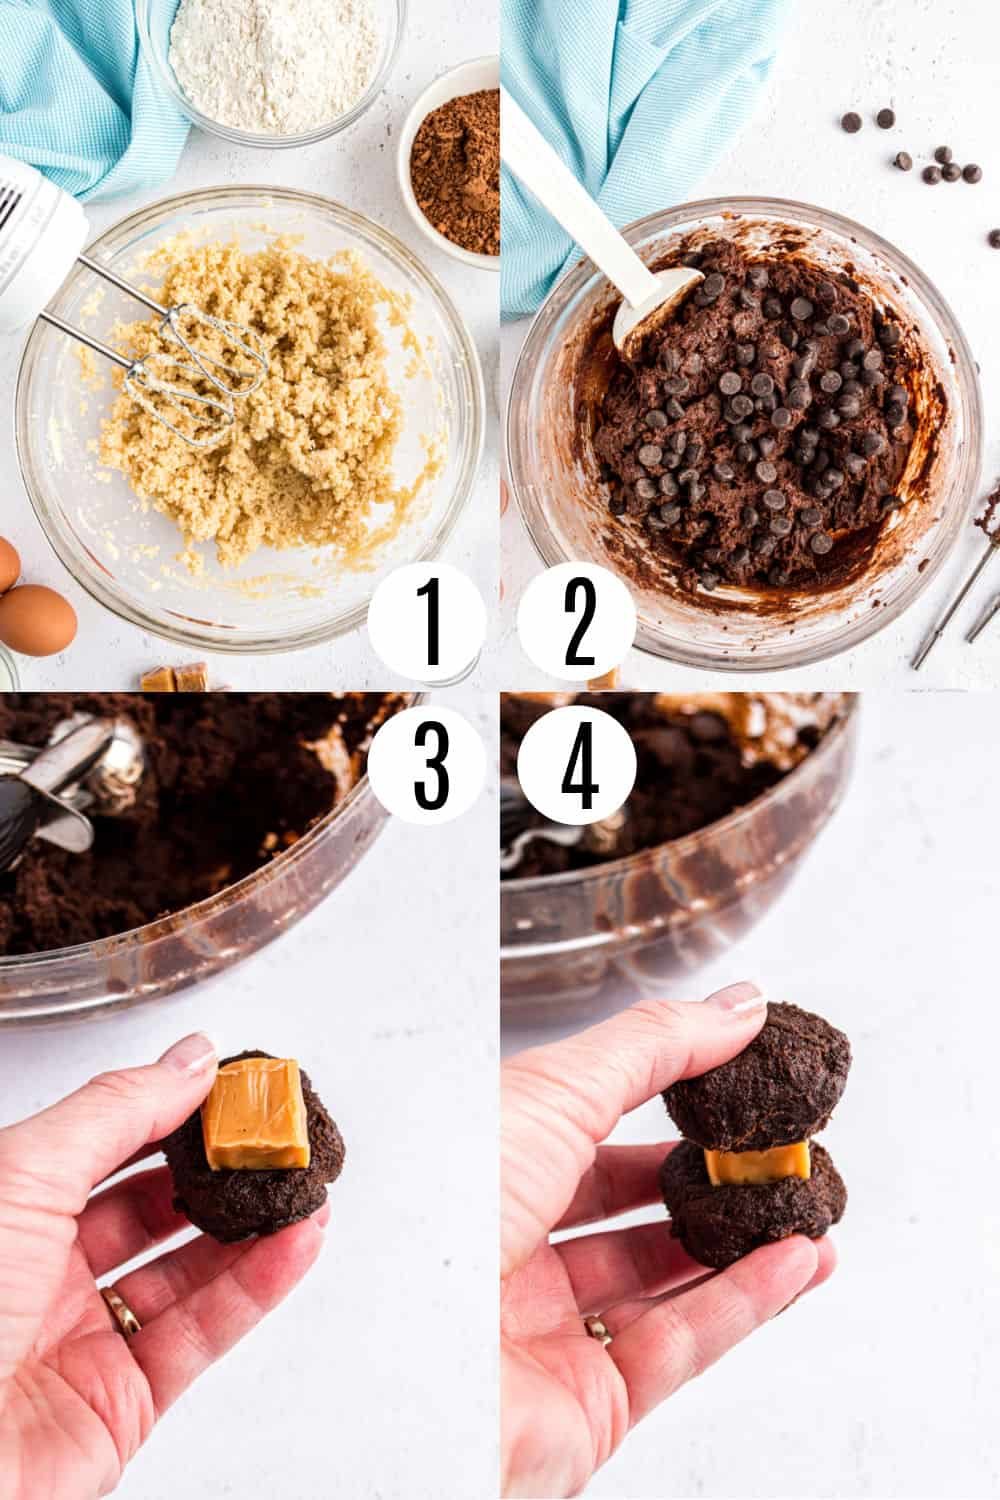 Step by step photos showing how to make salted caramel chocolate cookies.